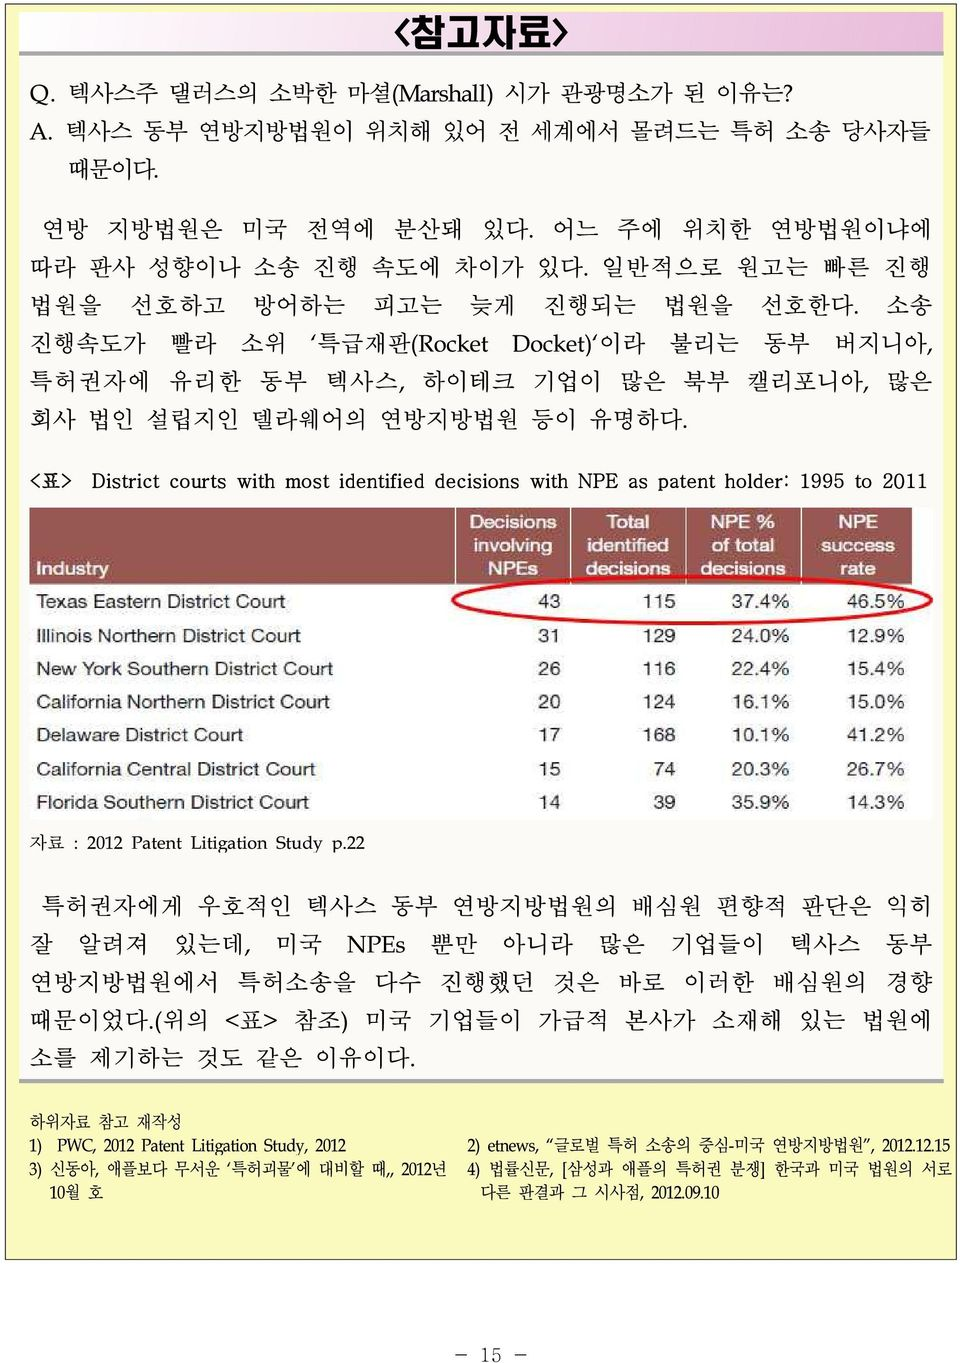 <표> District courts with most identified decisions with NPE as patent holder: 1995 to 2011 자료 : 2012 Patent Litigation Study p.